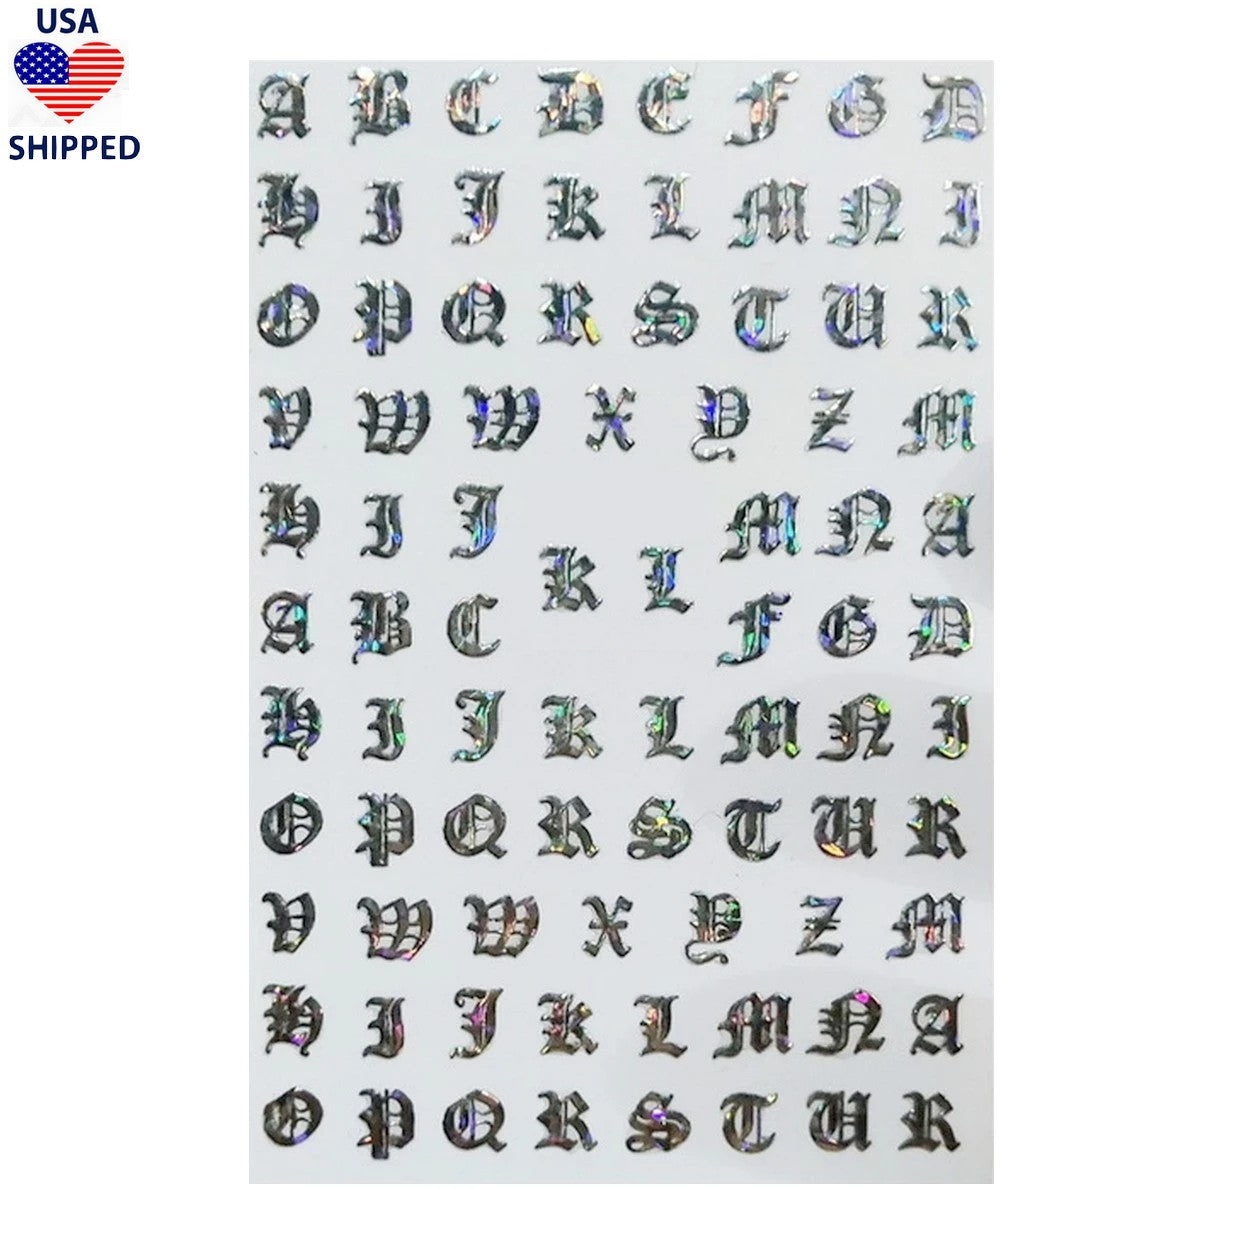 (USA) Font Gothic English Silver Holo Nail Stickers